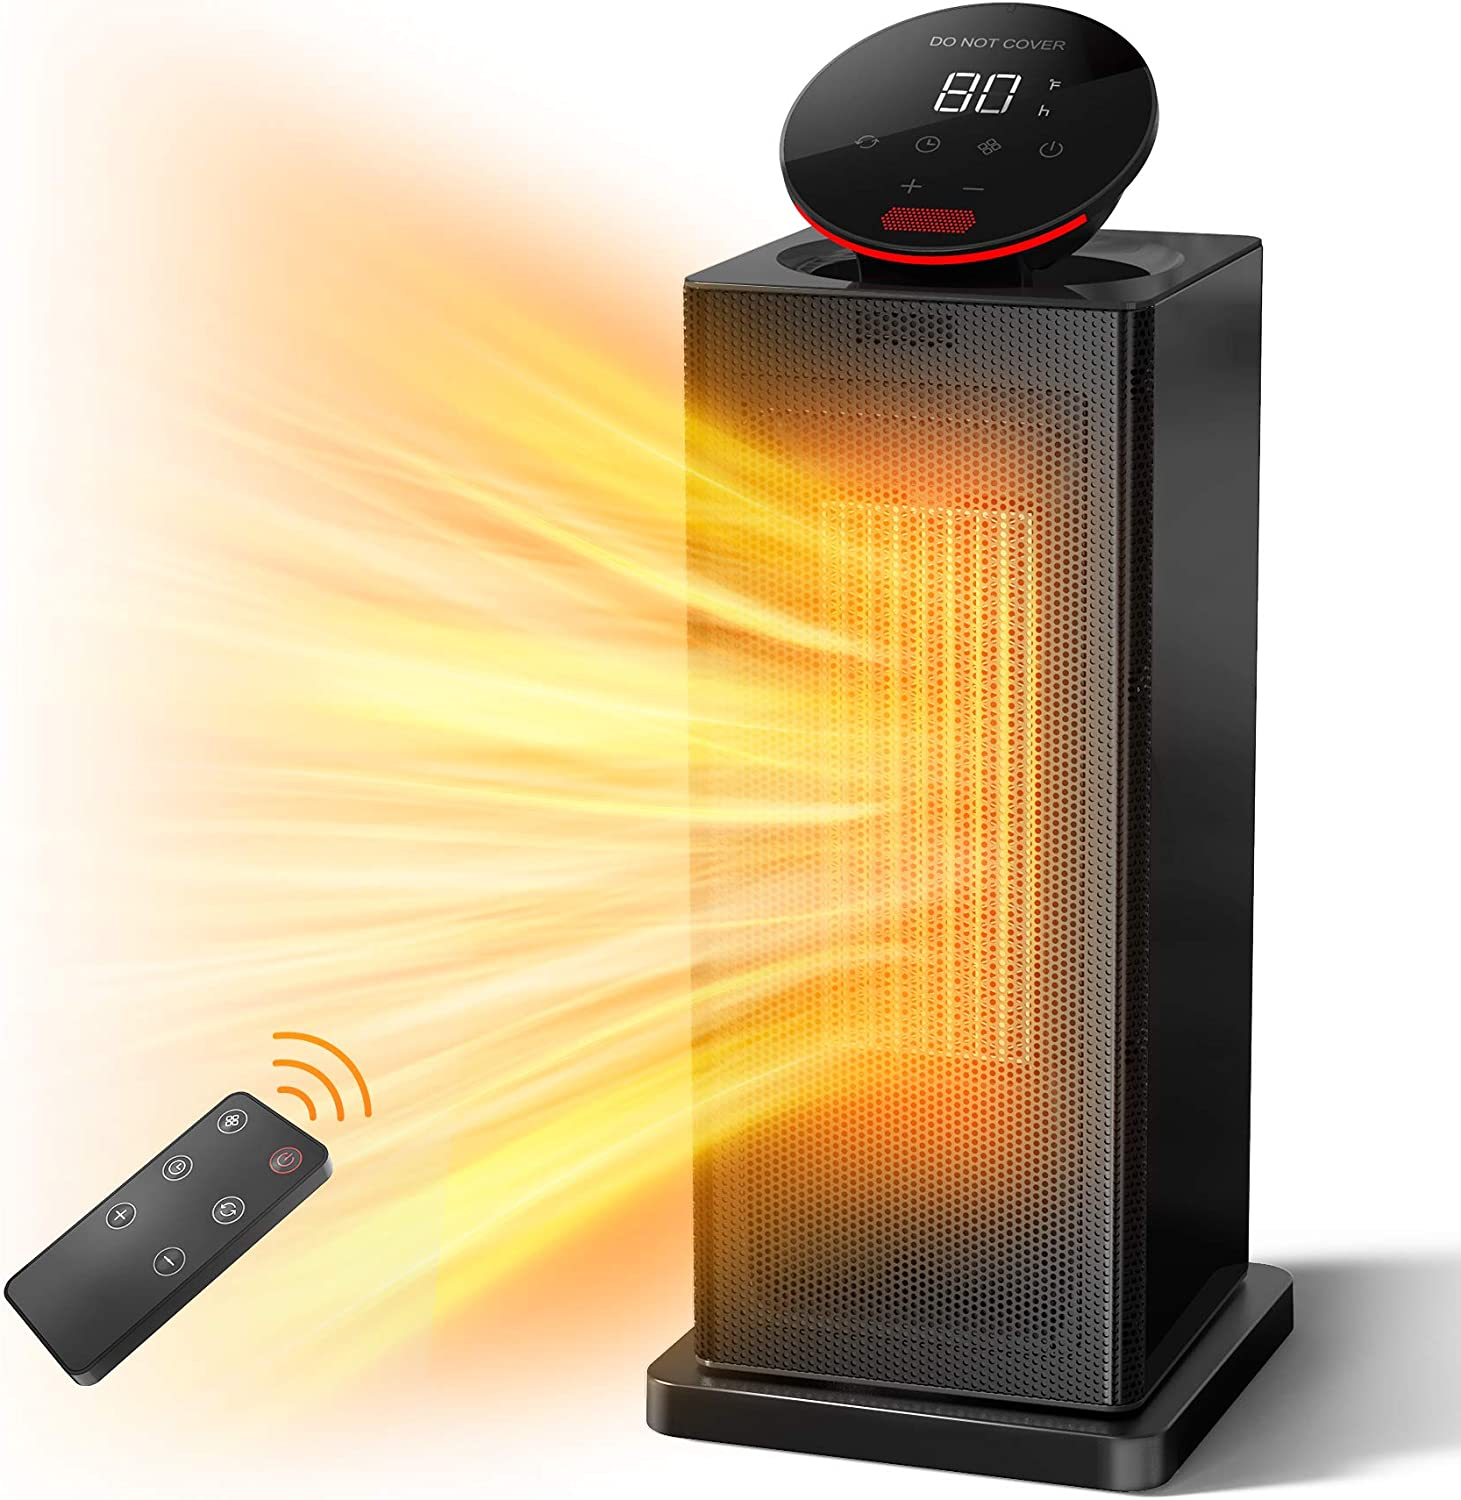 ALROCKET Space Heater, 1500W PTC Heater with ECO Thermostat, Tower Heater Oscillating Electric Heater with Remote Control, 24H Timer LED Display, Overheat Tip-over Protection Fast Heat for Home Office